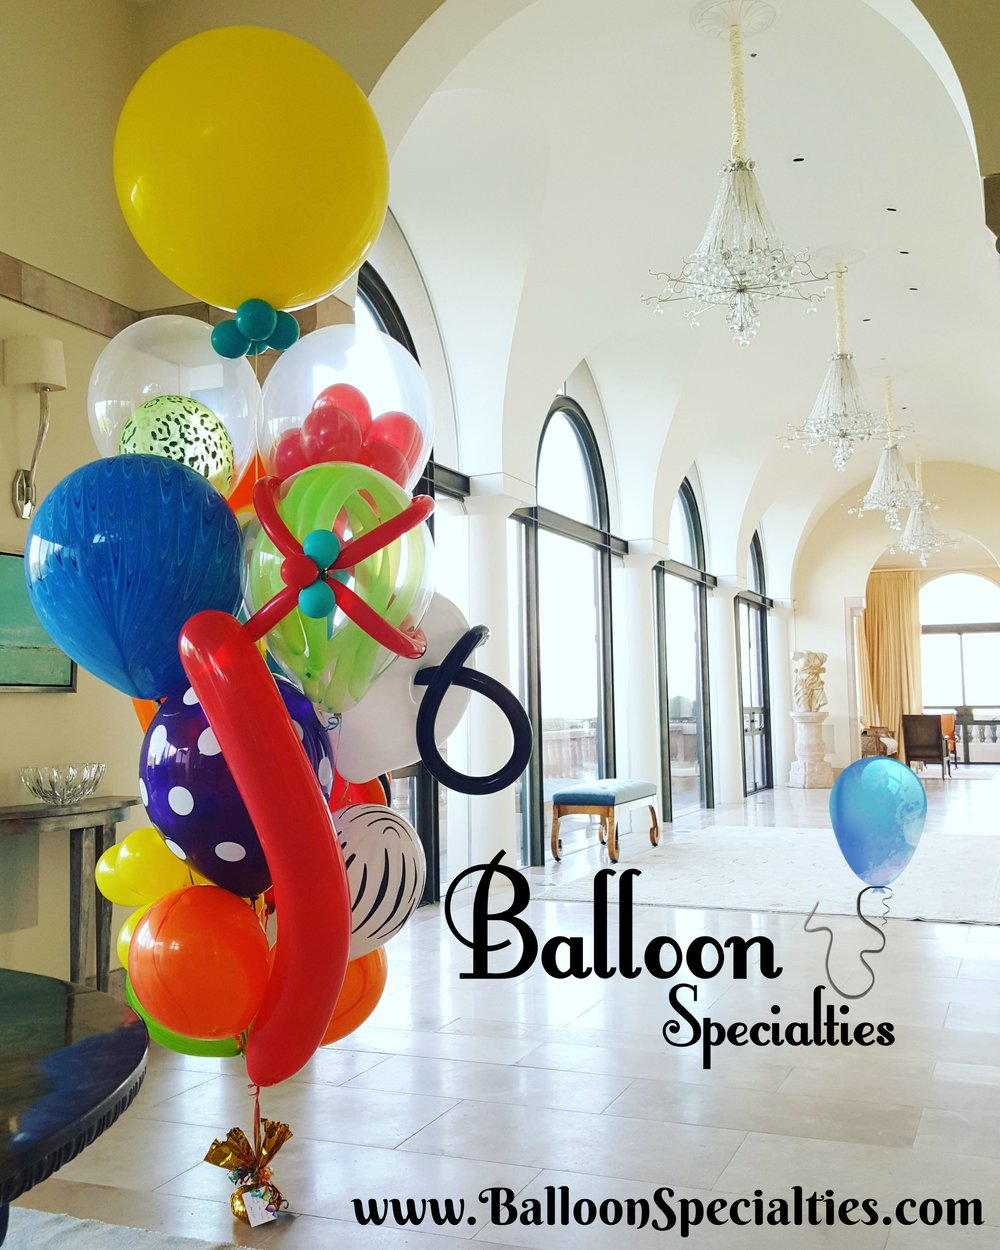 Zim Balloon Specialties All Latex Chihuly Birthday Balloon Bouquet.jpg